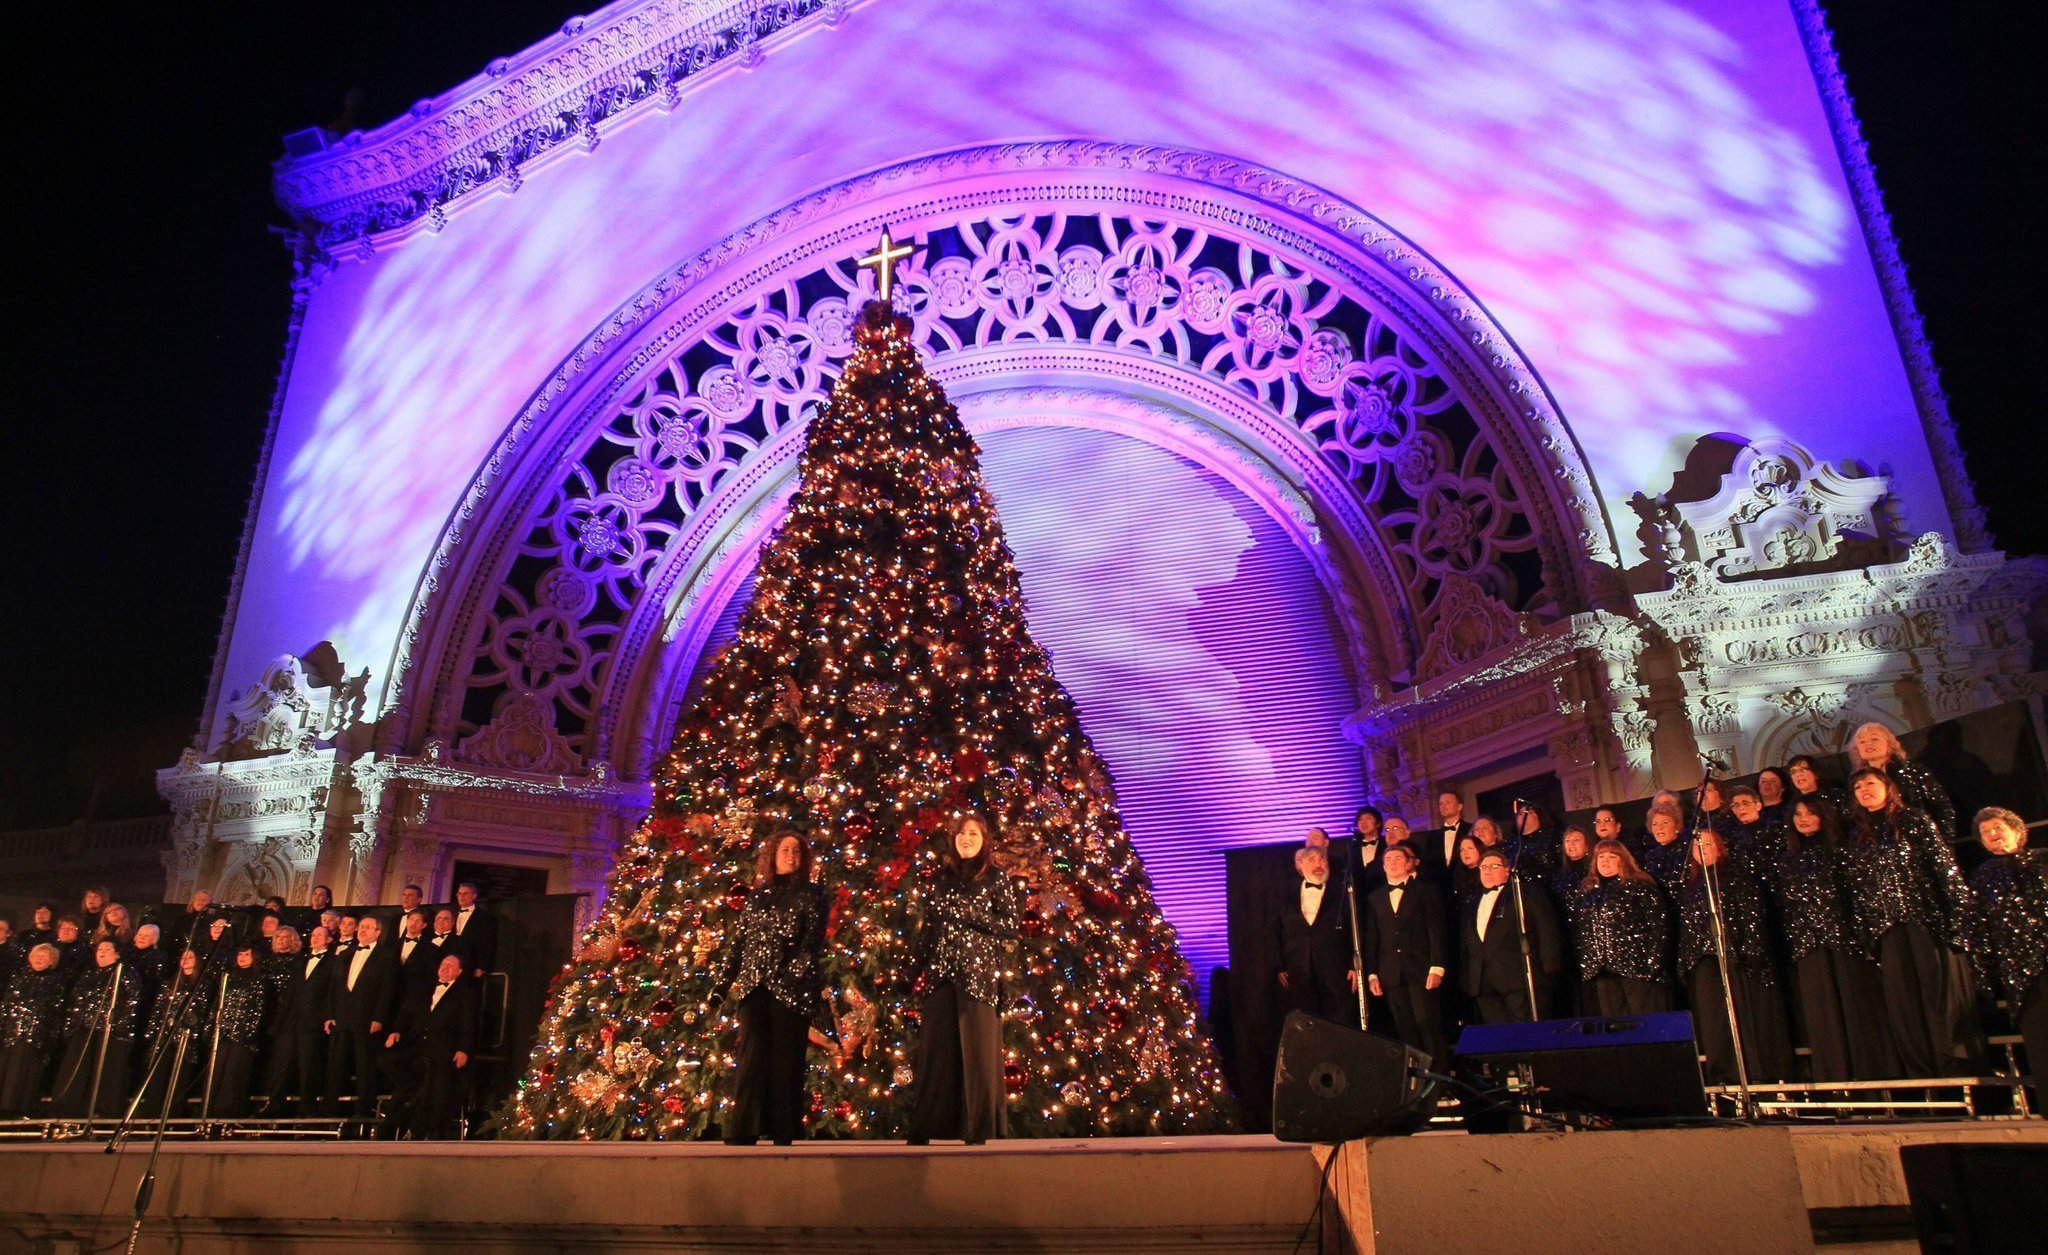 12 Things To Do During the Holidays in San Diego